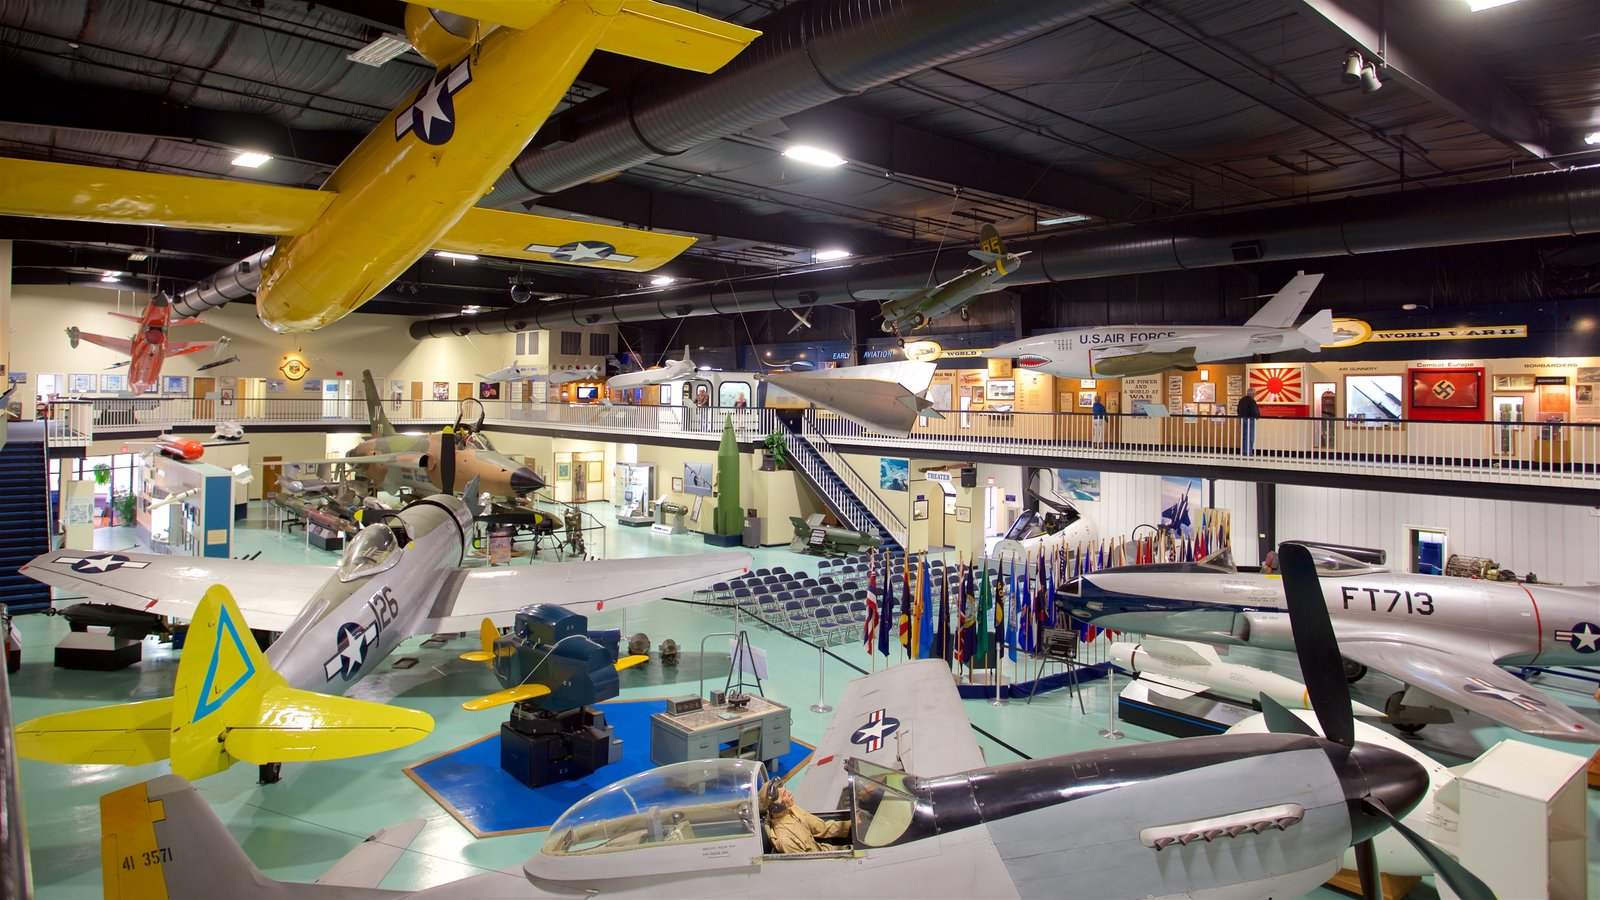 Air Force Armament Museum which includes military items, heritage elements and interior views